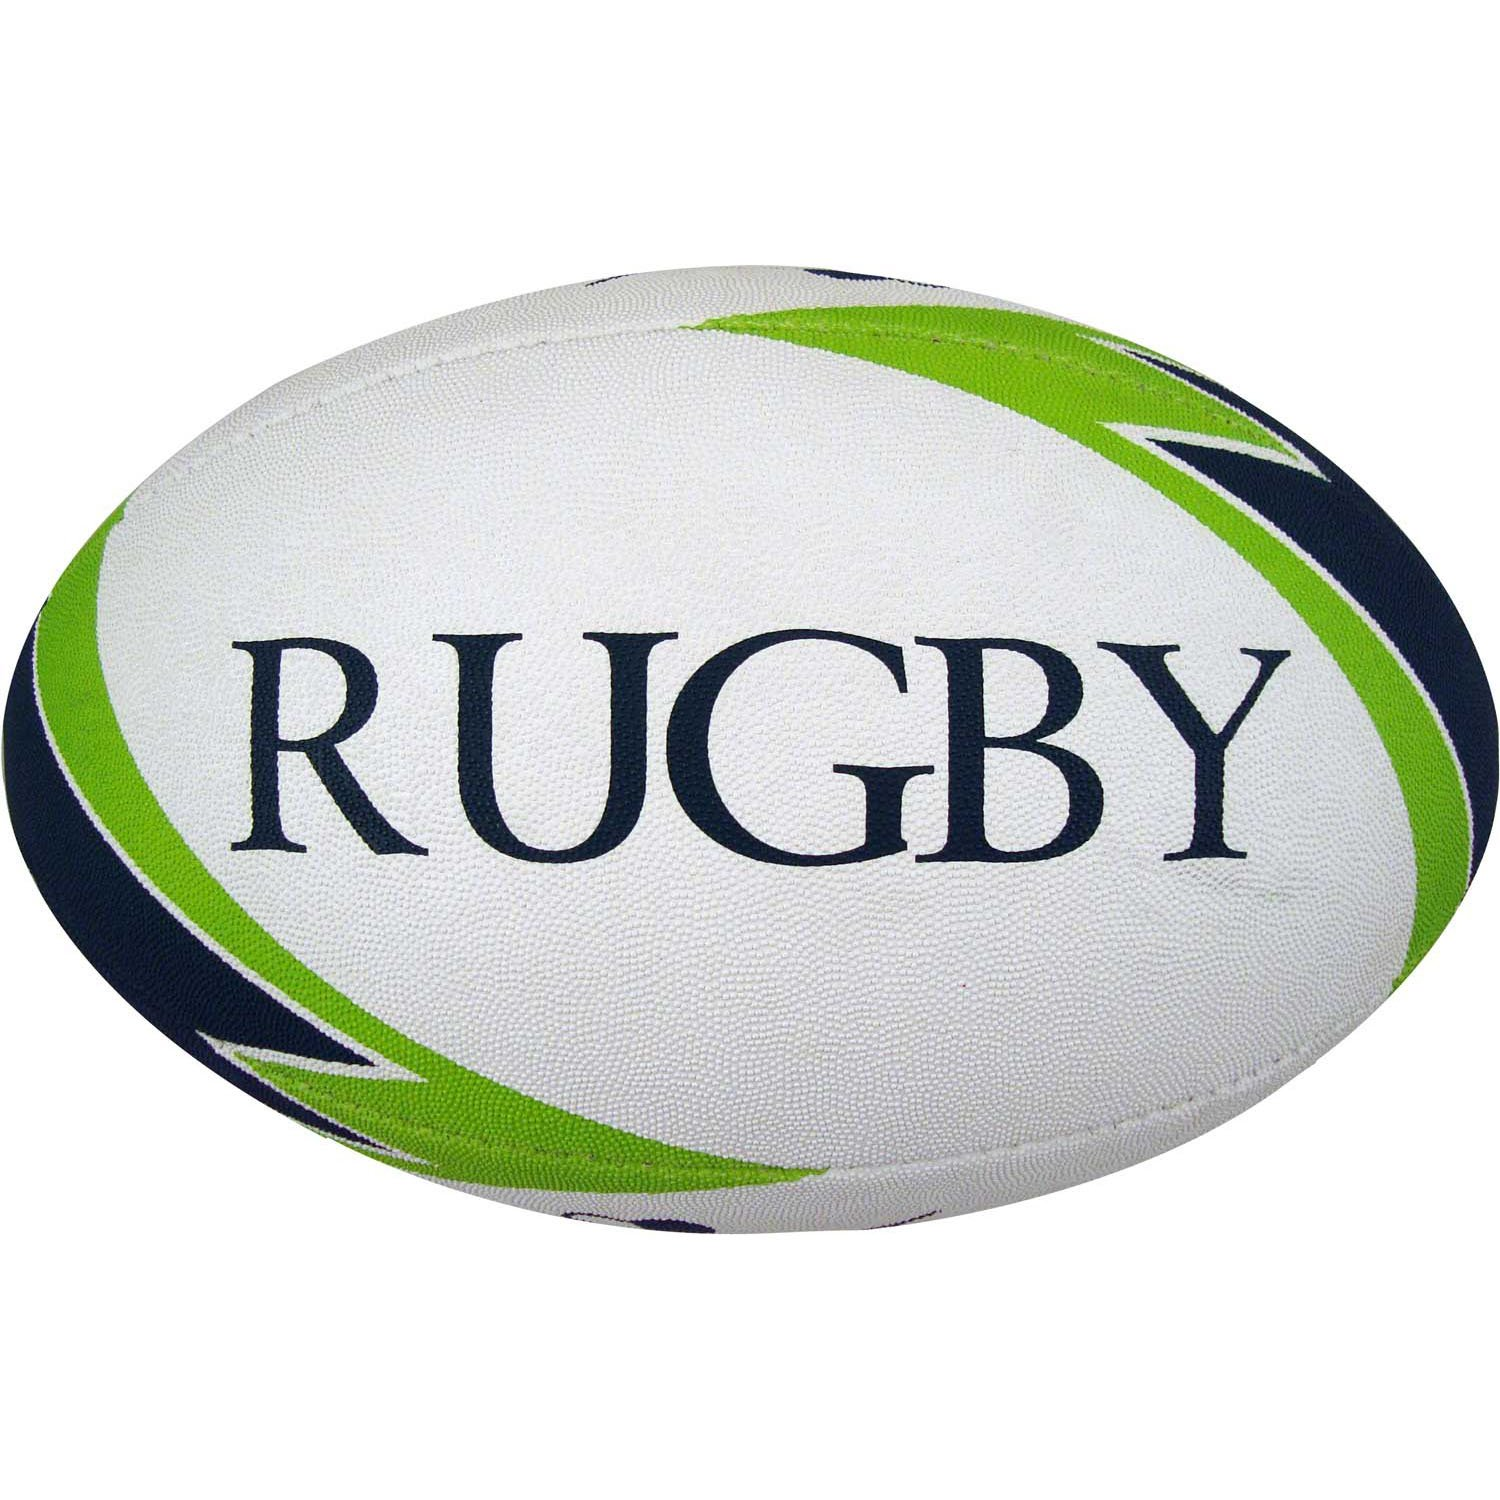 Image result for rugby ball